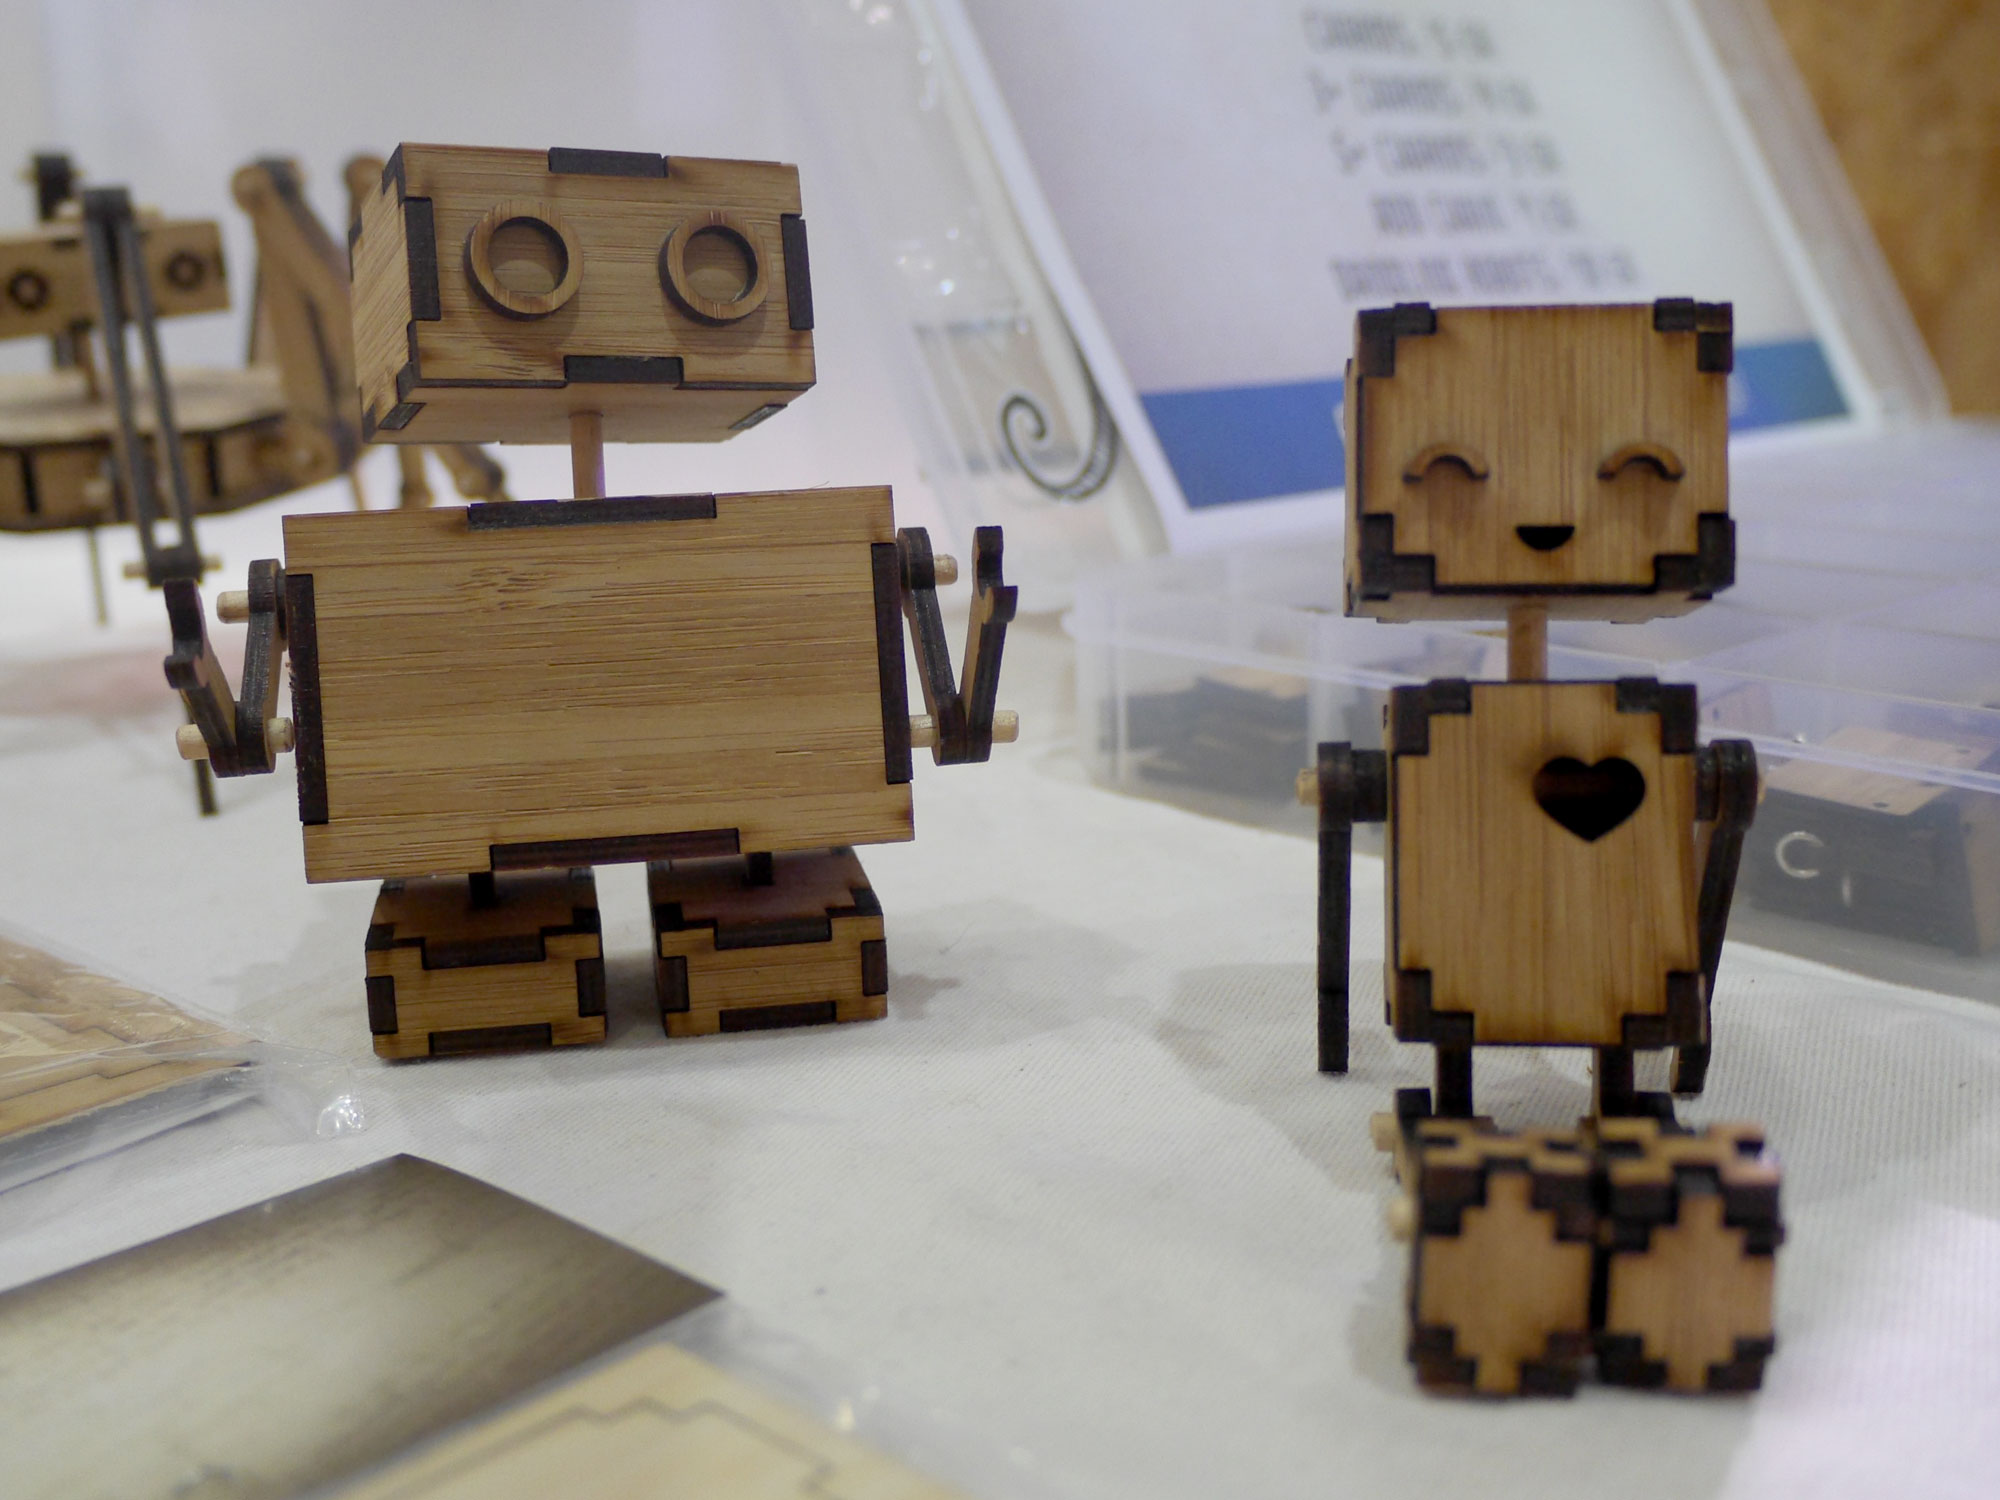 My Favorite Toys at Maker Faire